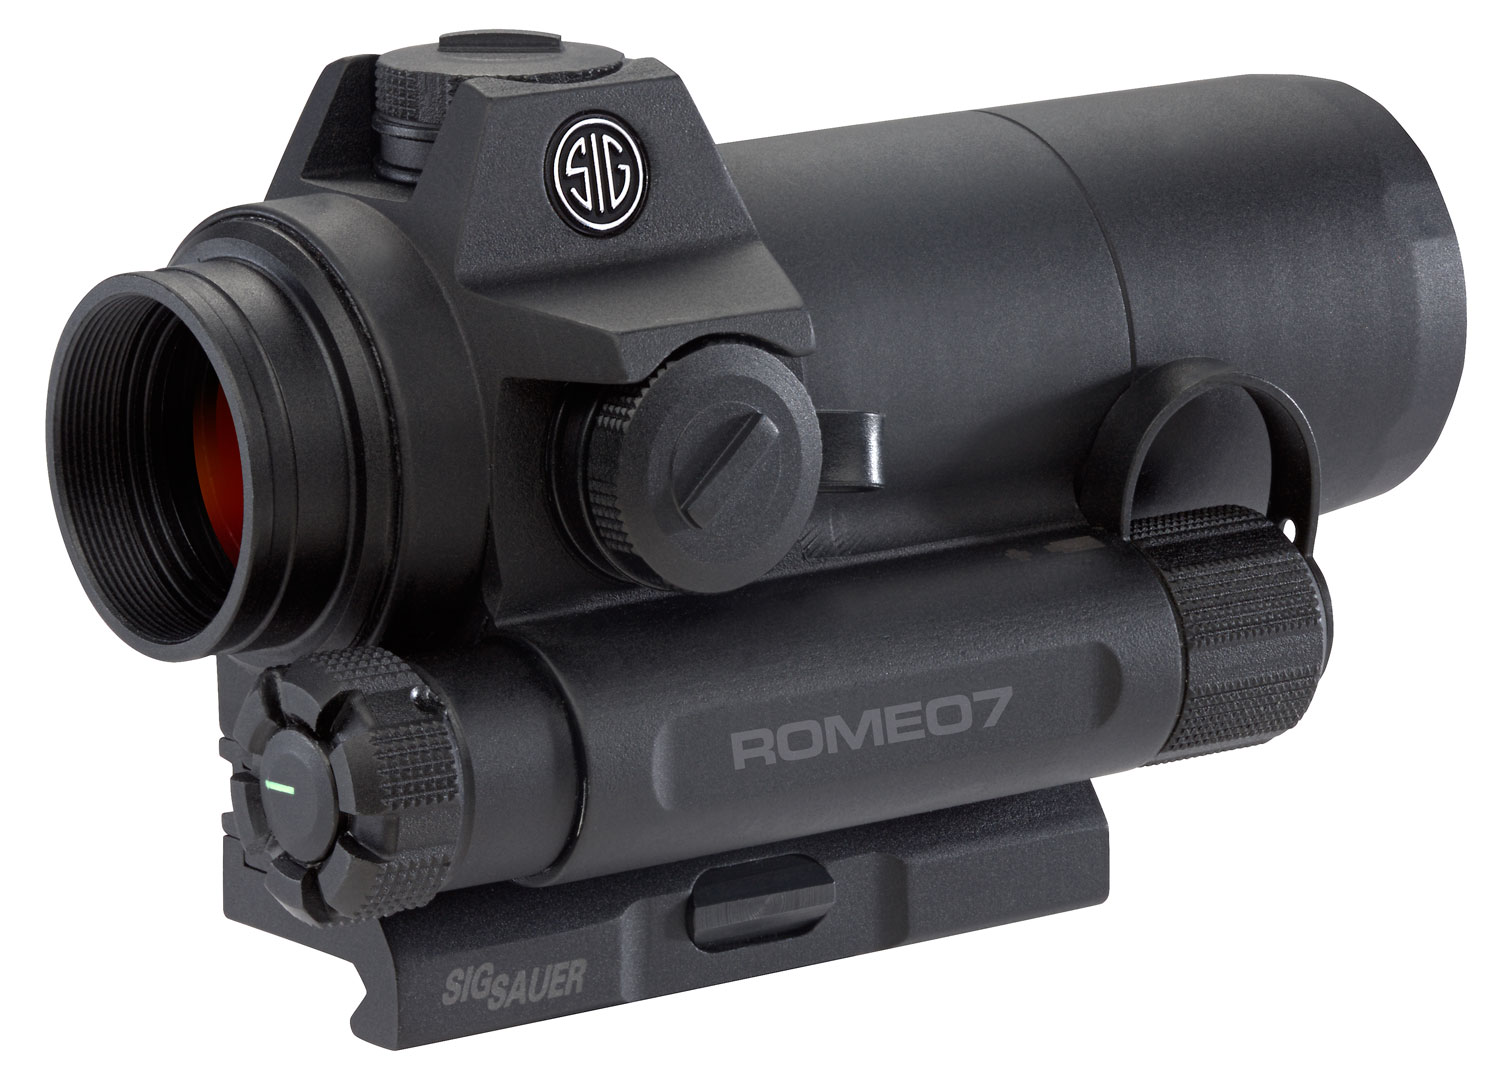 Sig Sauer Electro-Optics SOR71001 Romeo7 1x 30mm Obj 2 MOA Illuminated Red Dot Black AA